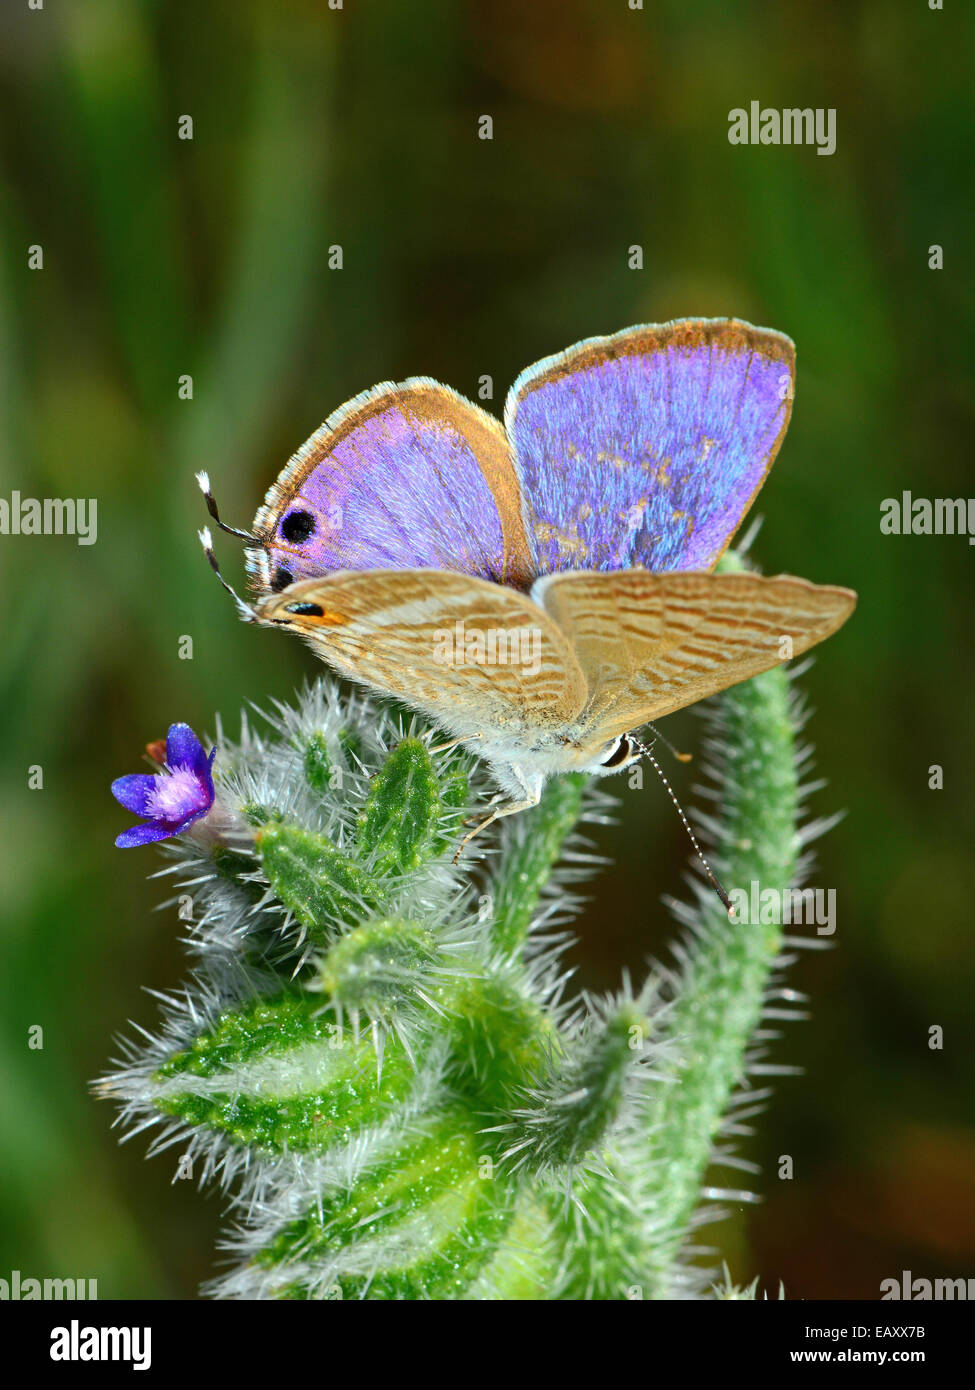 Blue butterfly on spiny plant - Stock Image